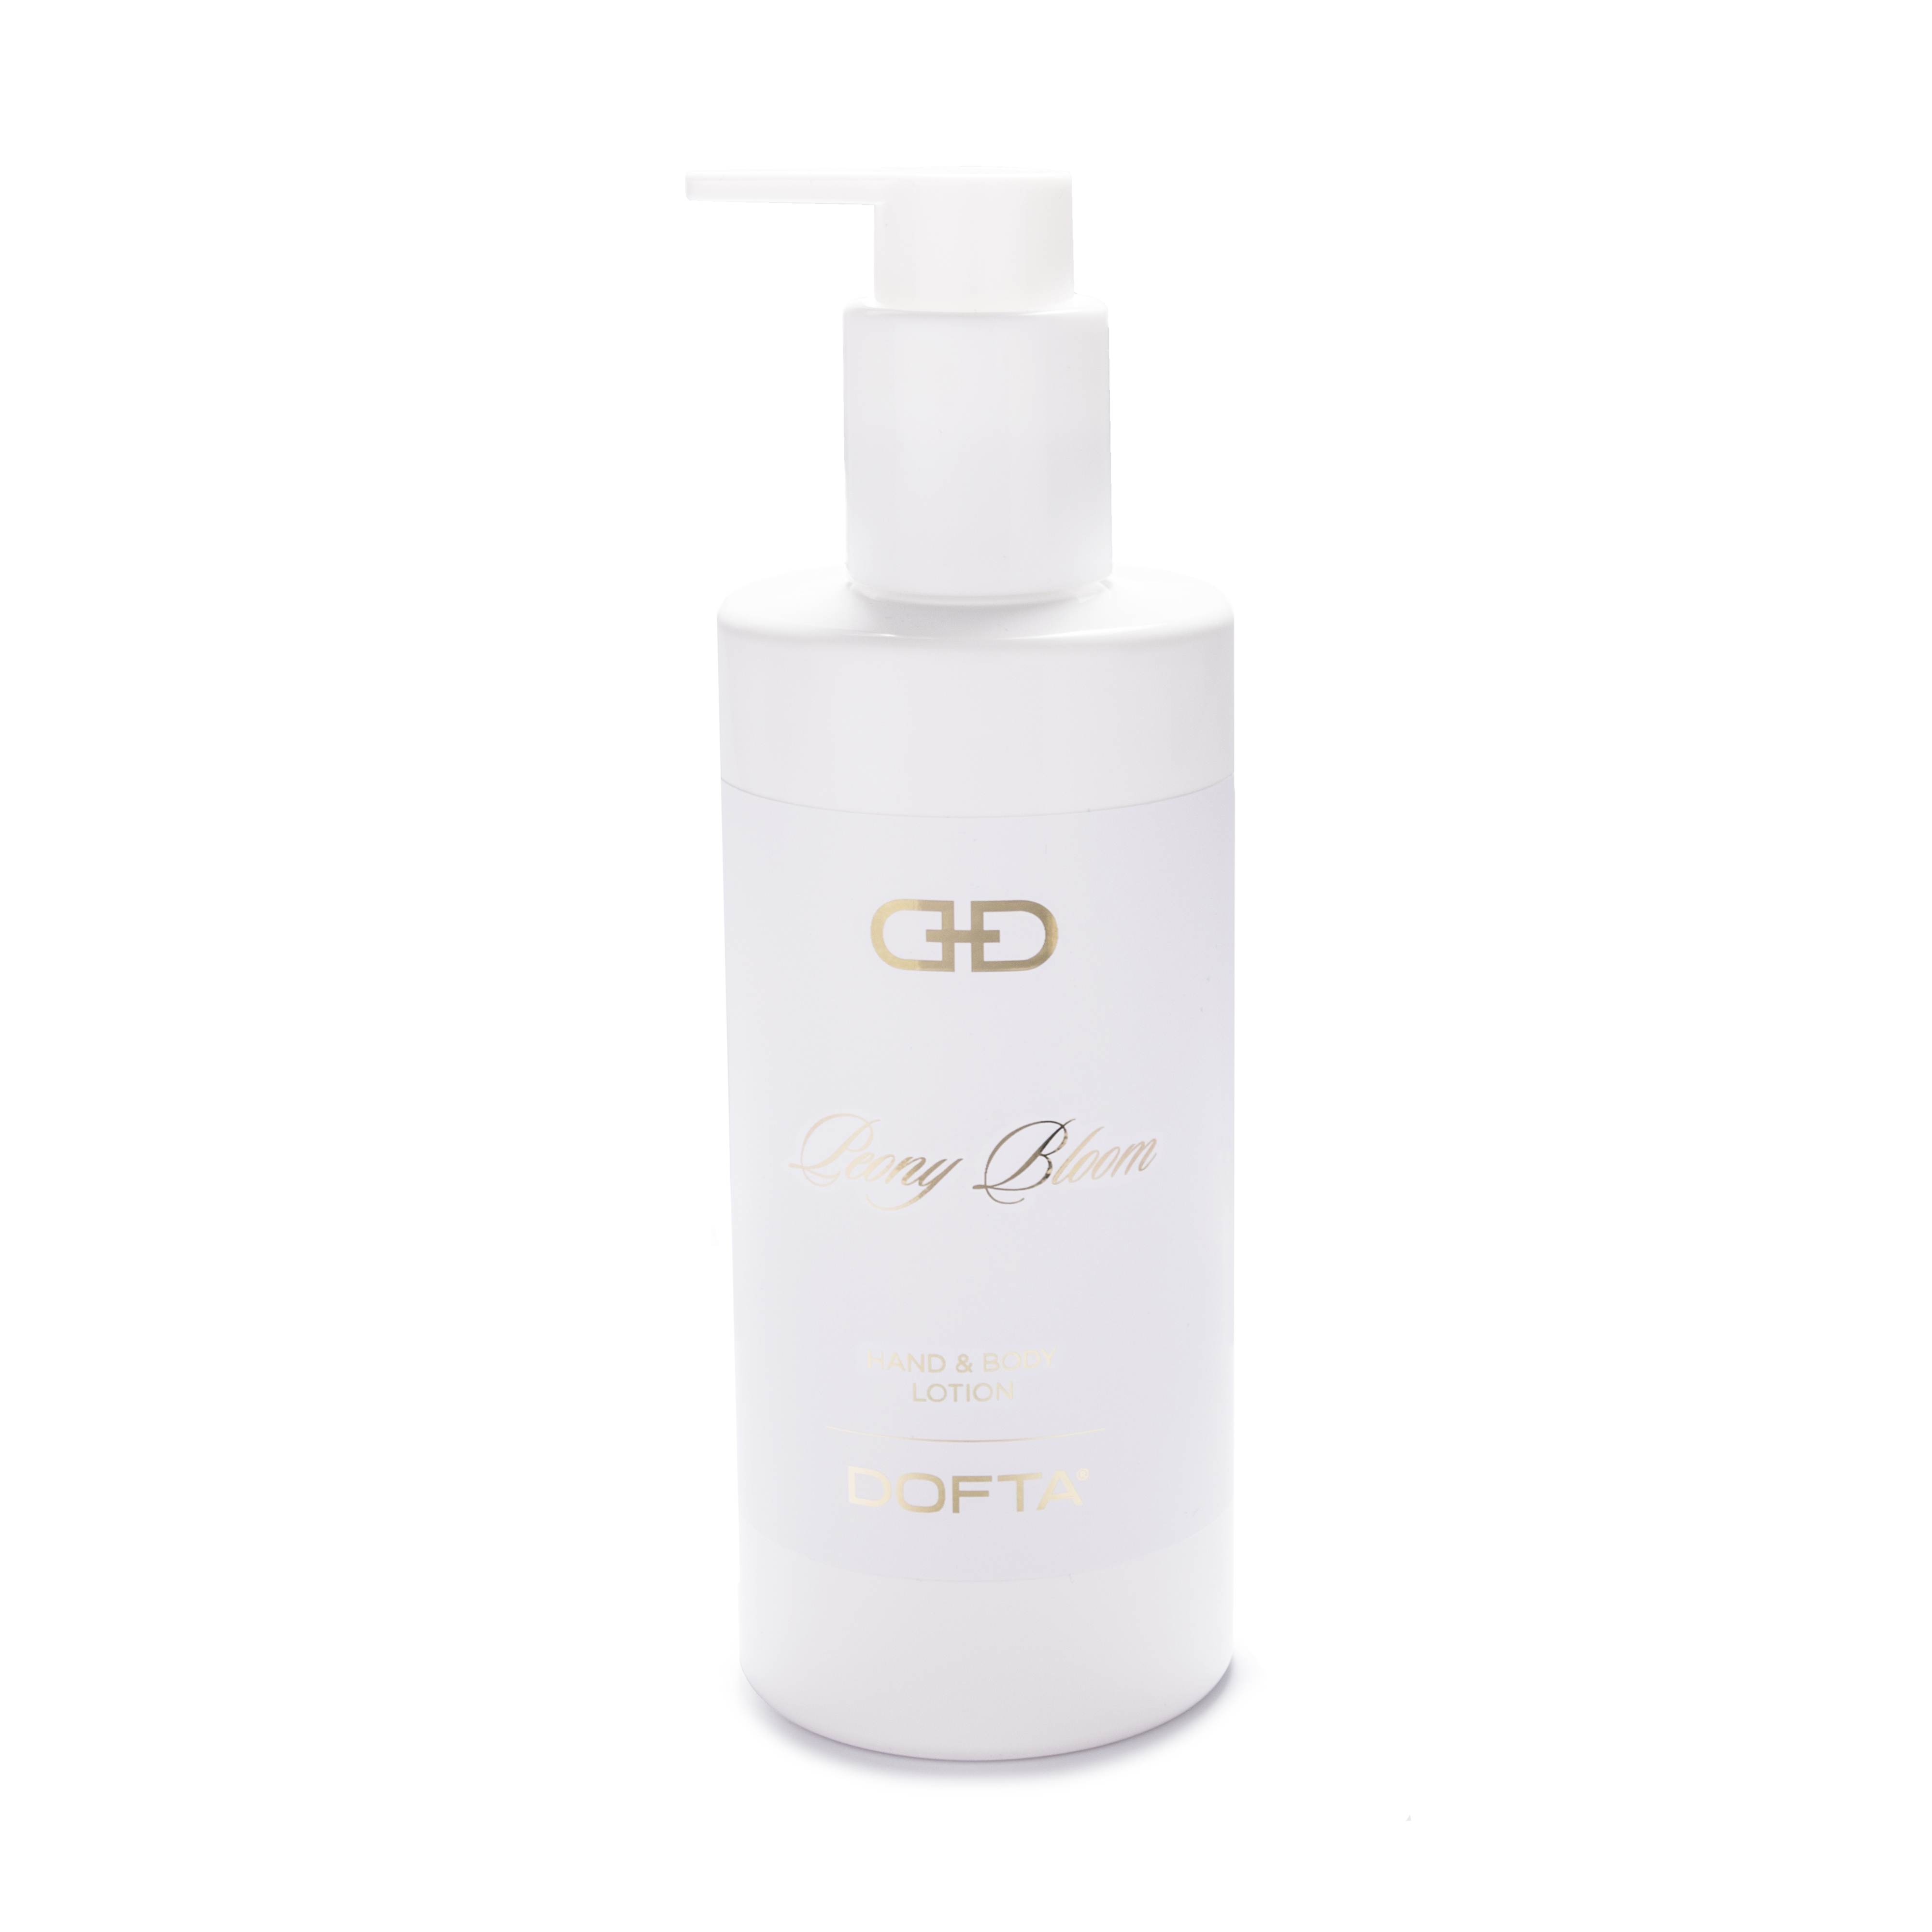 Peony Bloom - White & Gold Hand & Body Lotion